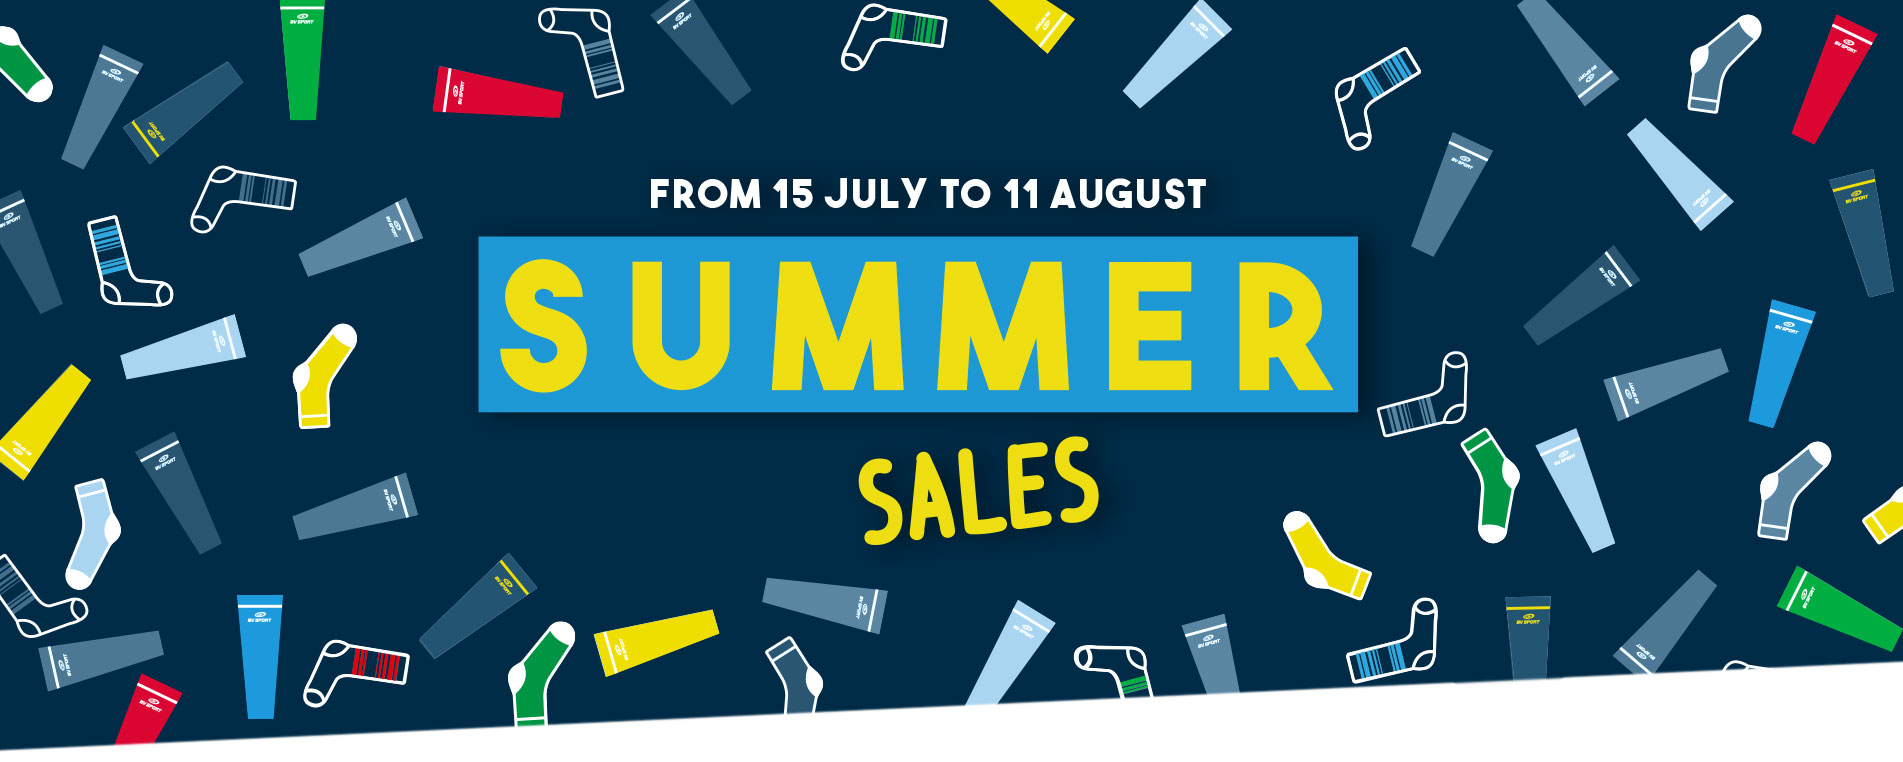 Summer Sale 2020   Compression products for men and women athletes at the best prices   Sleeves, shorts, socks, ankle socks, triathlon suits, accessories